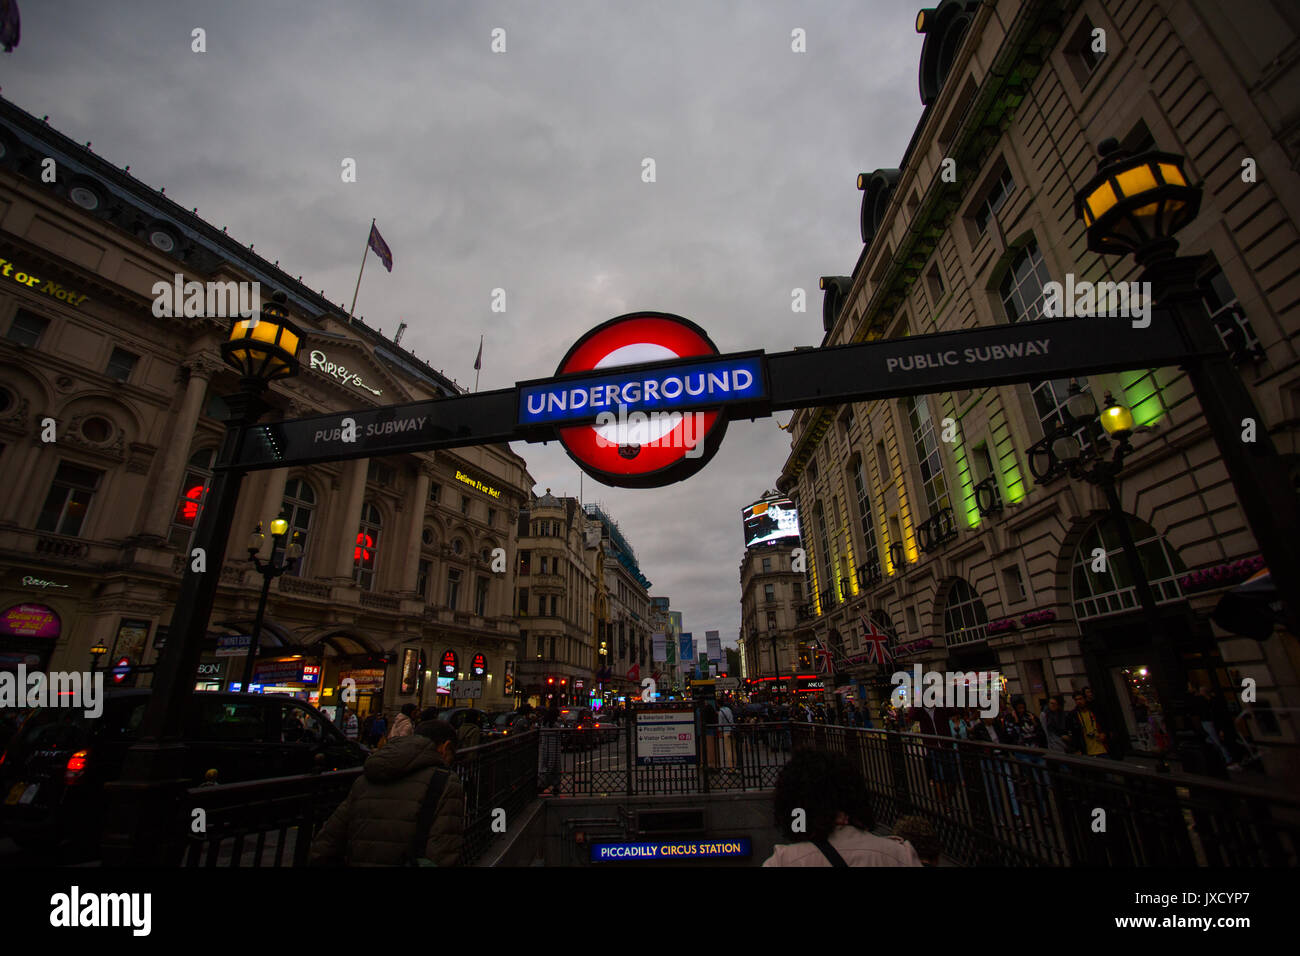 Entrance to the Underground and Public subway on an overcast day at Piccadilly Circus, London. - Stock Image